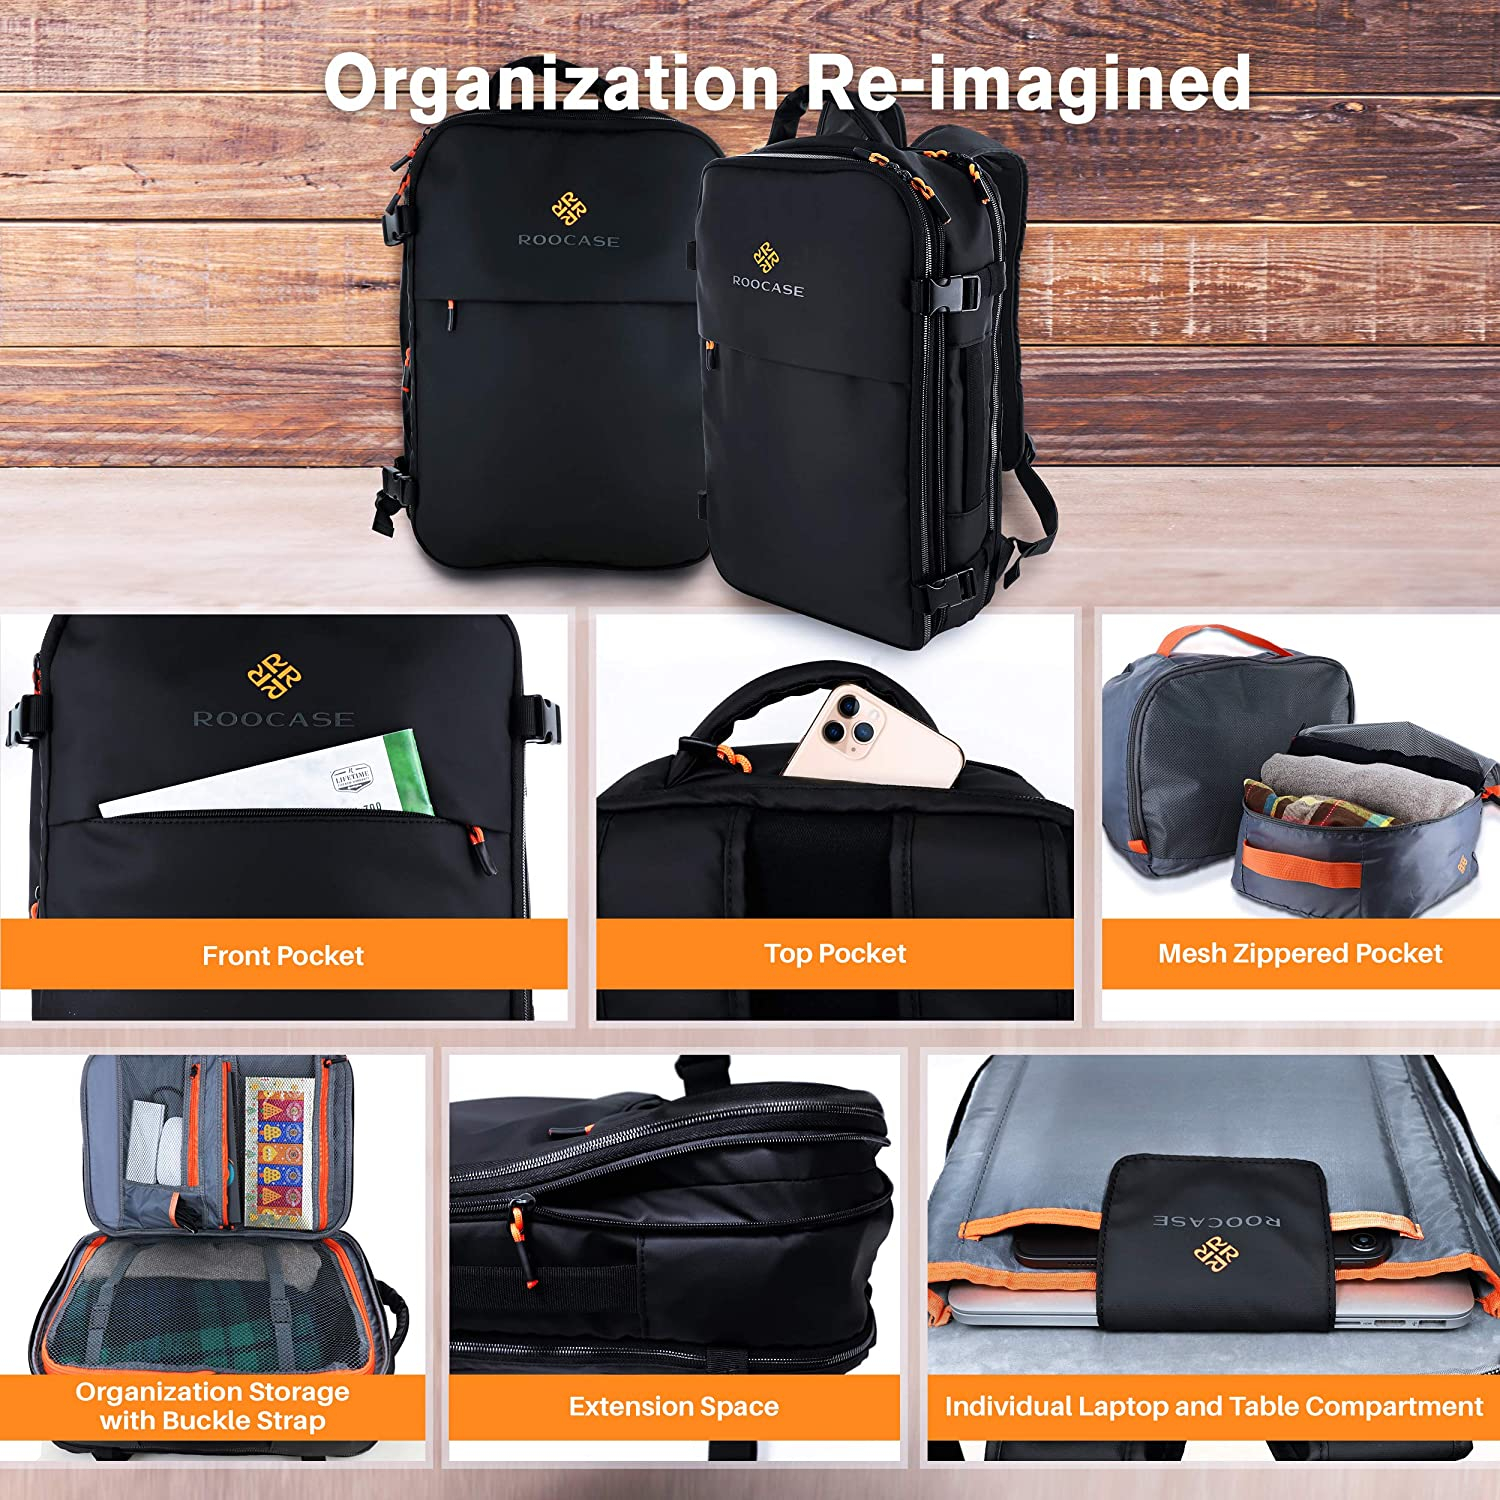 2 Free Packing Cubes Included 15.6 inch Laptop for Business Weekender Luggage Carry On Backpack for International Travel Bag for Men and Women rooCASE Venice Travel Backpack 25L